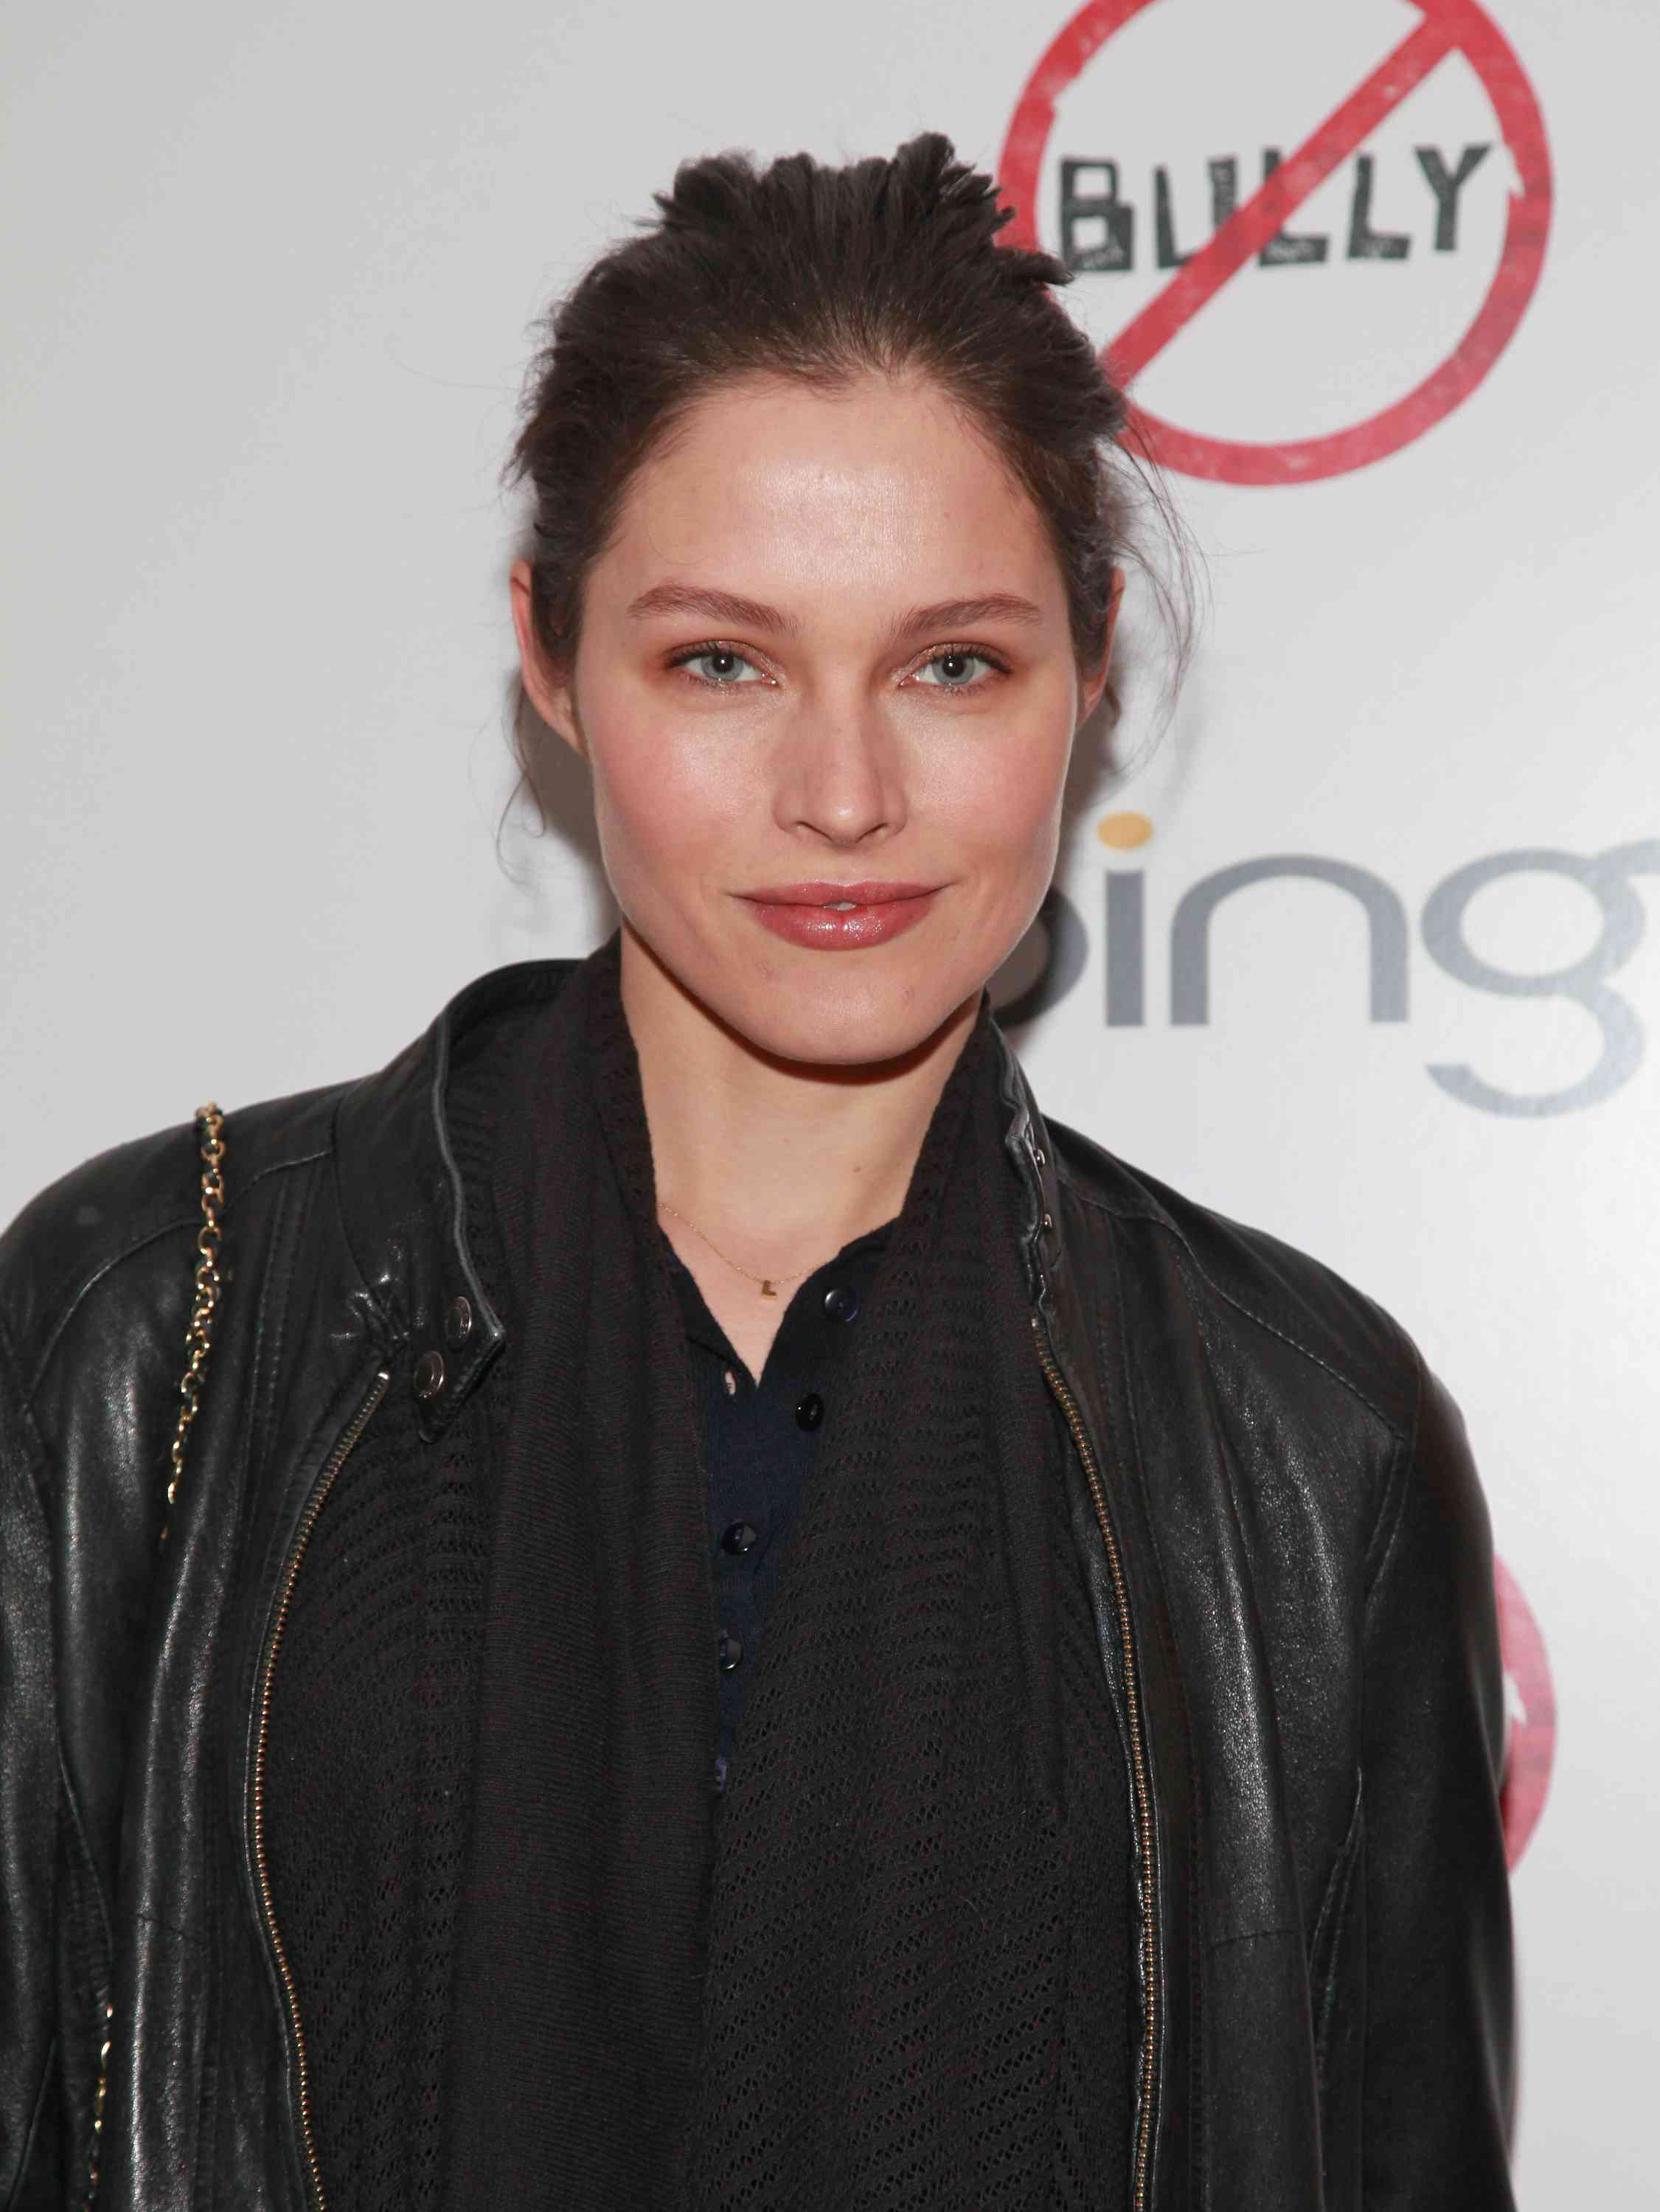 Lonneke Engel The Weinstein Company & Bing screening Of 'Bully' (March 11, 2012)